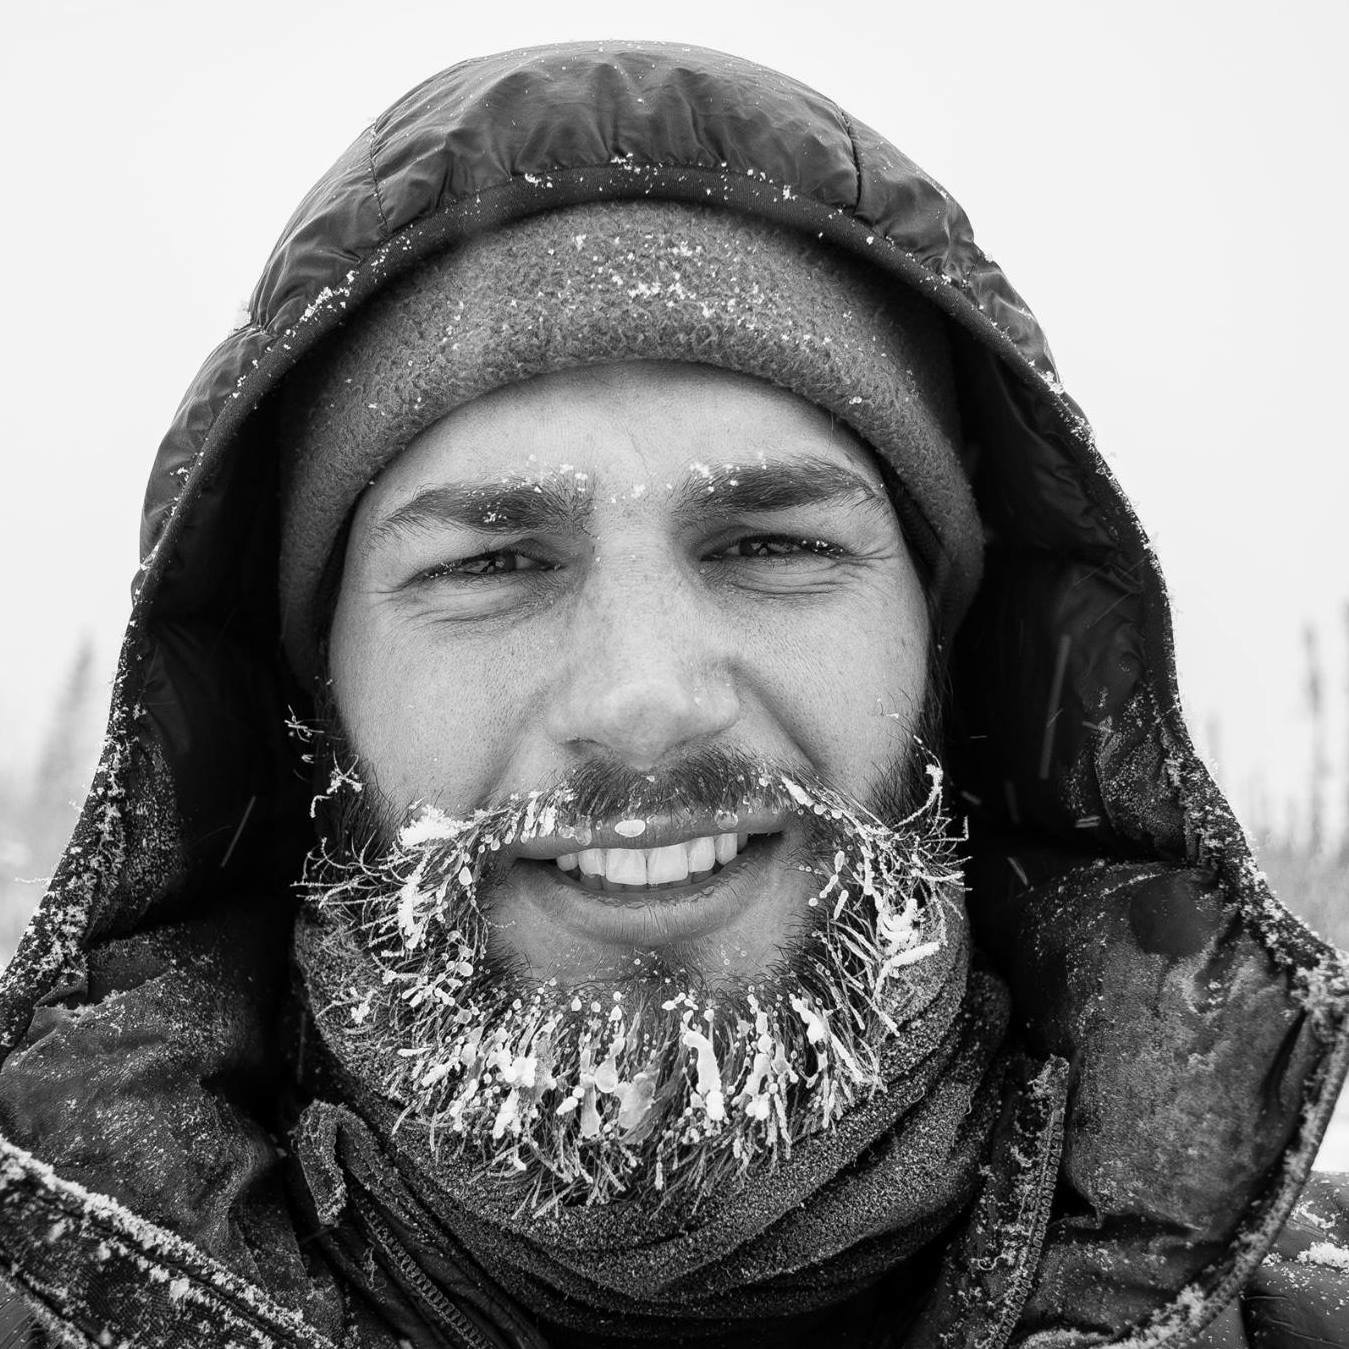 Black and white photo of Kyle with a frozen beard